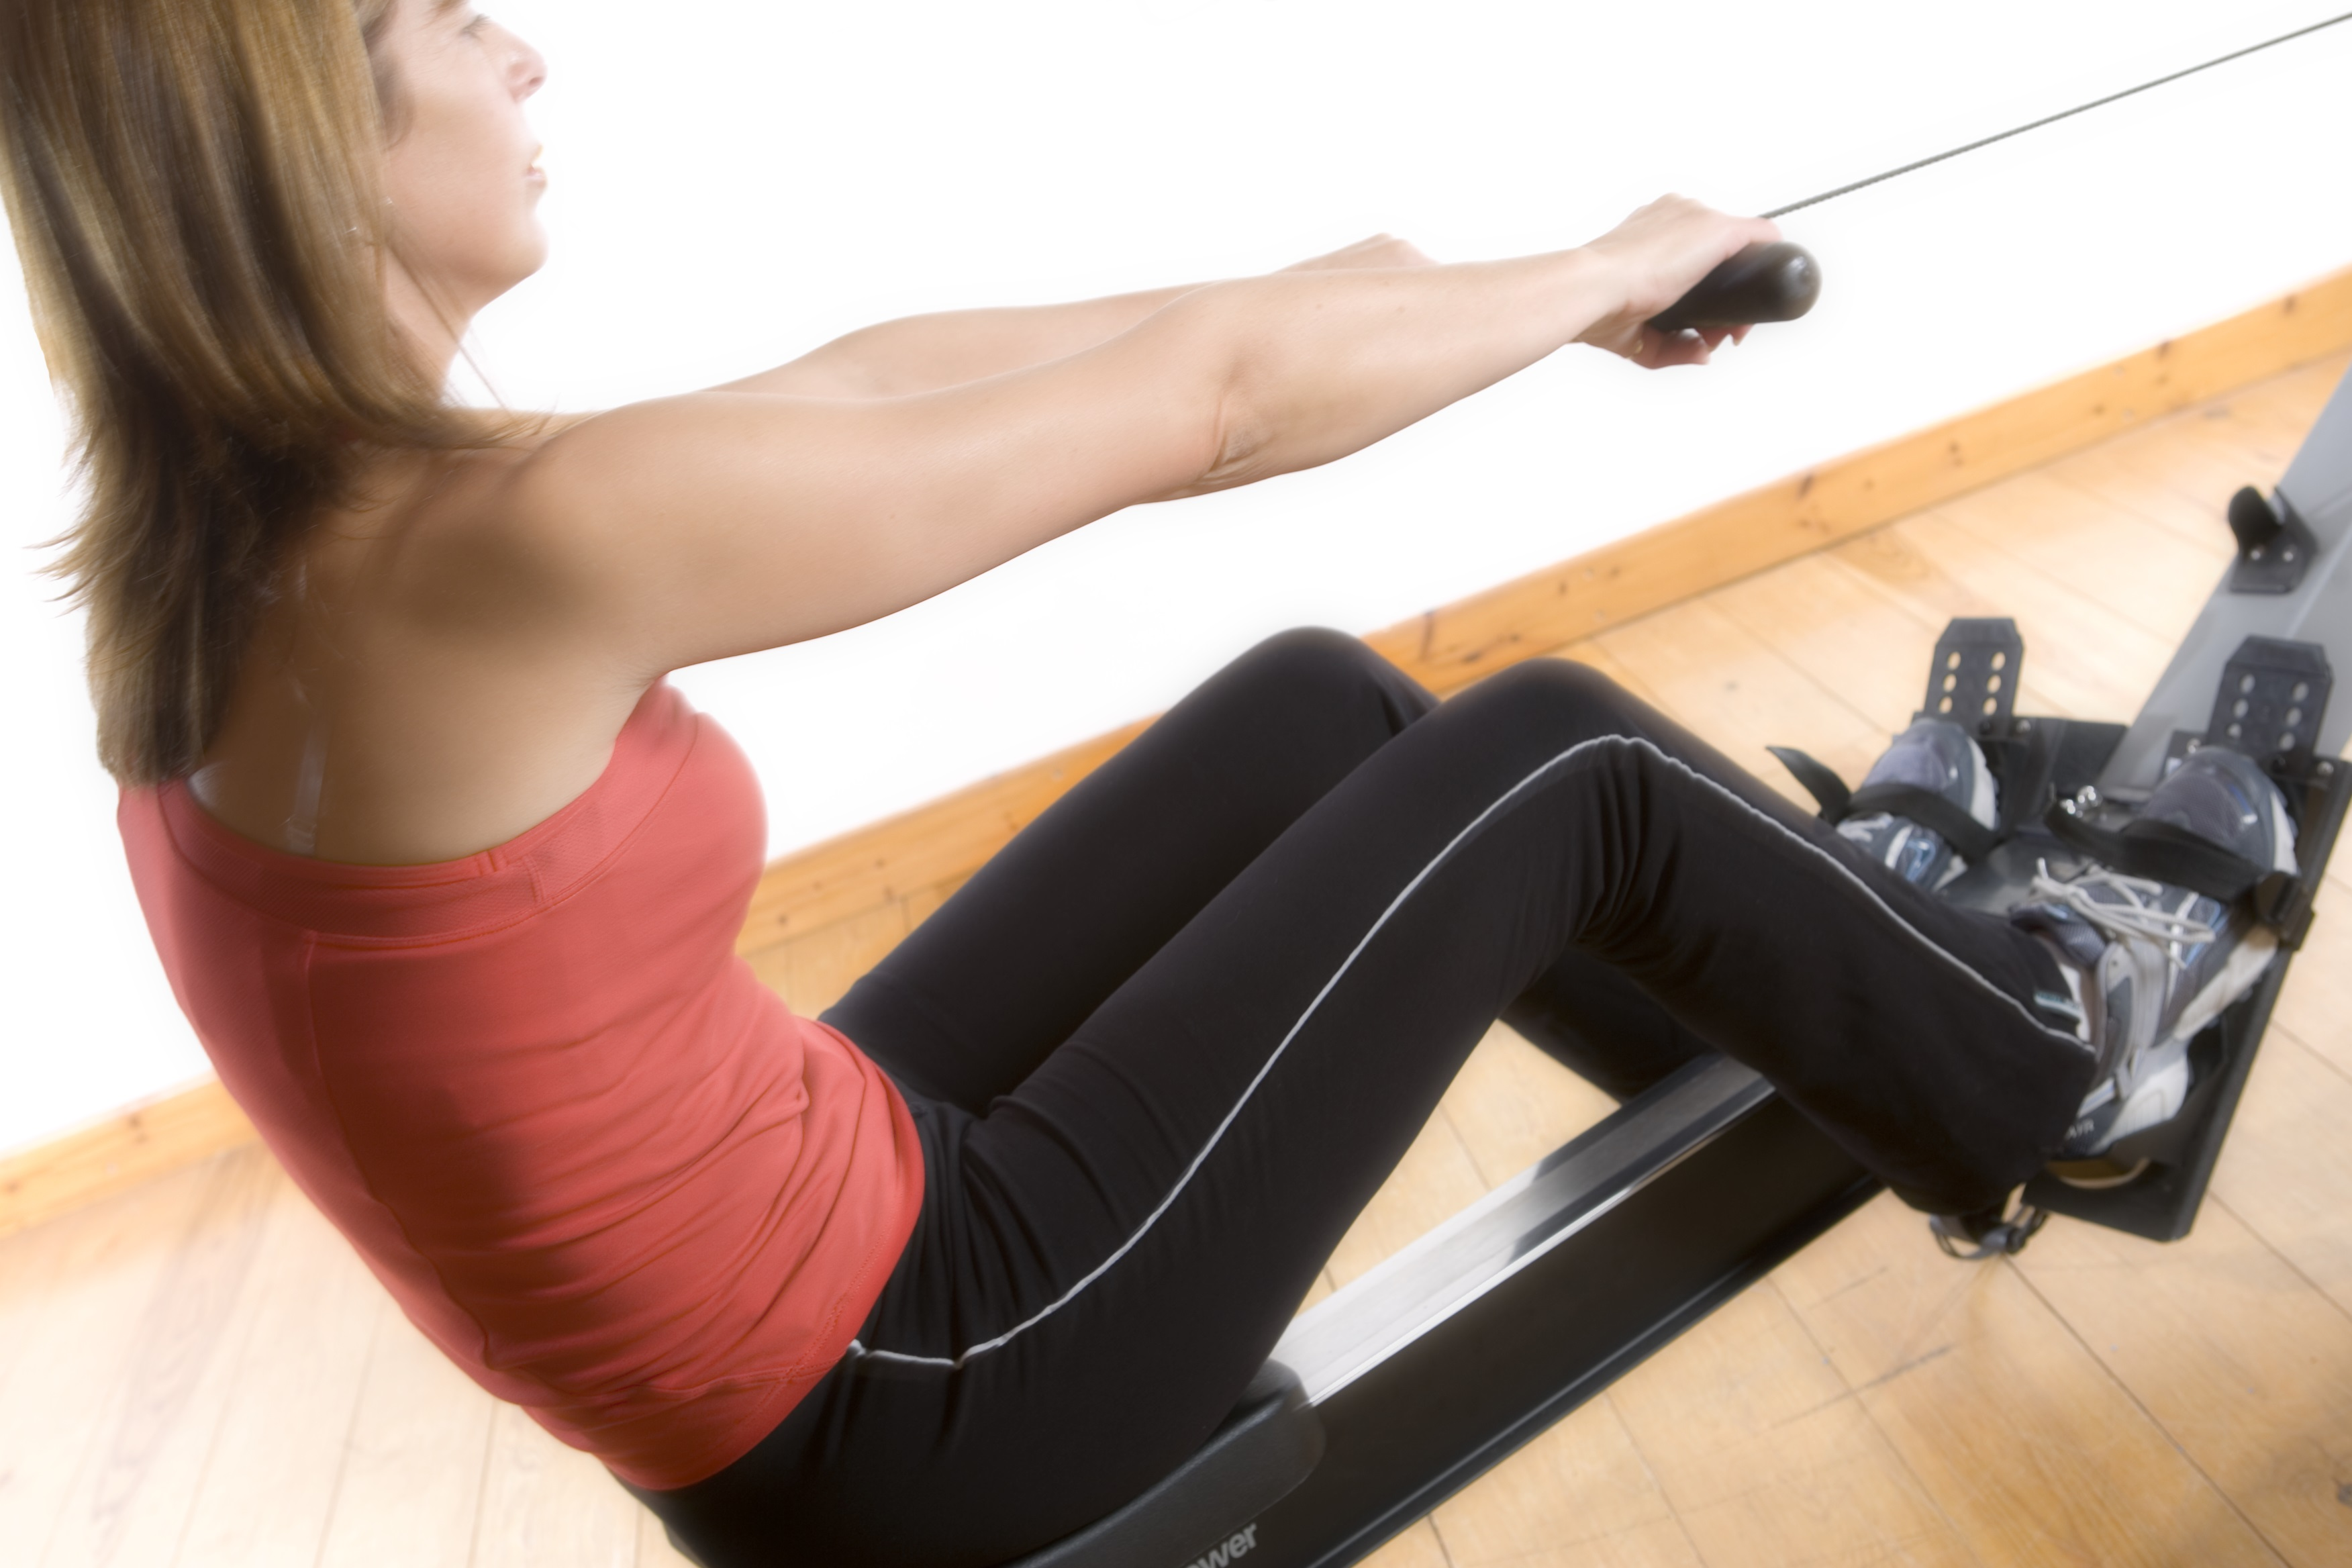 lady on rowing machine working on cardiovascular fitness